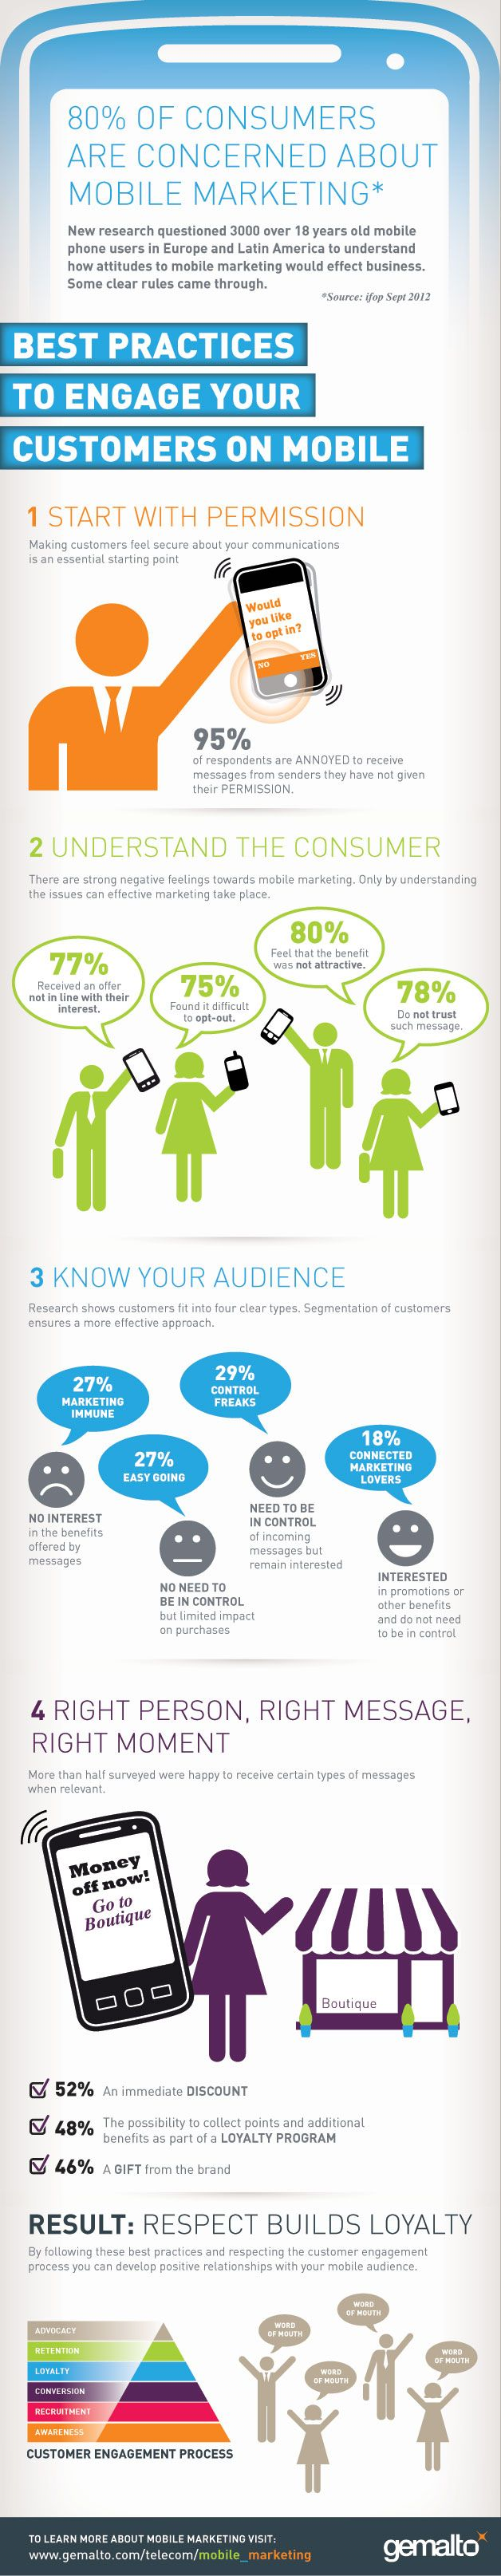 Best Practices to #Engage Your Customers on #Mobile   http://www.digitalinformationworld.com/